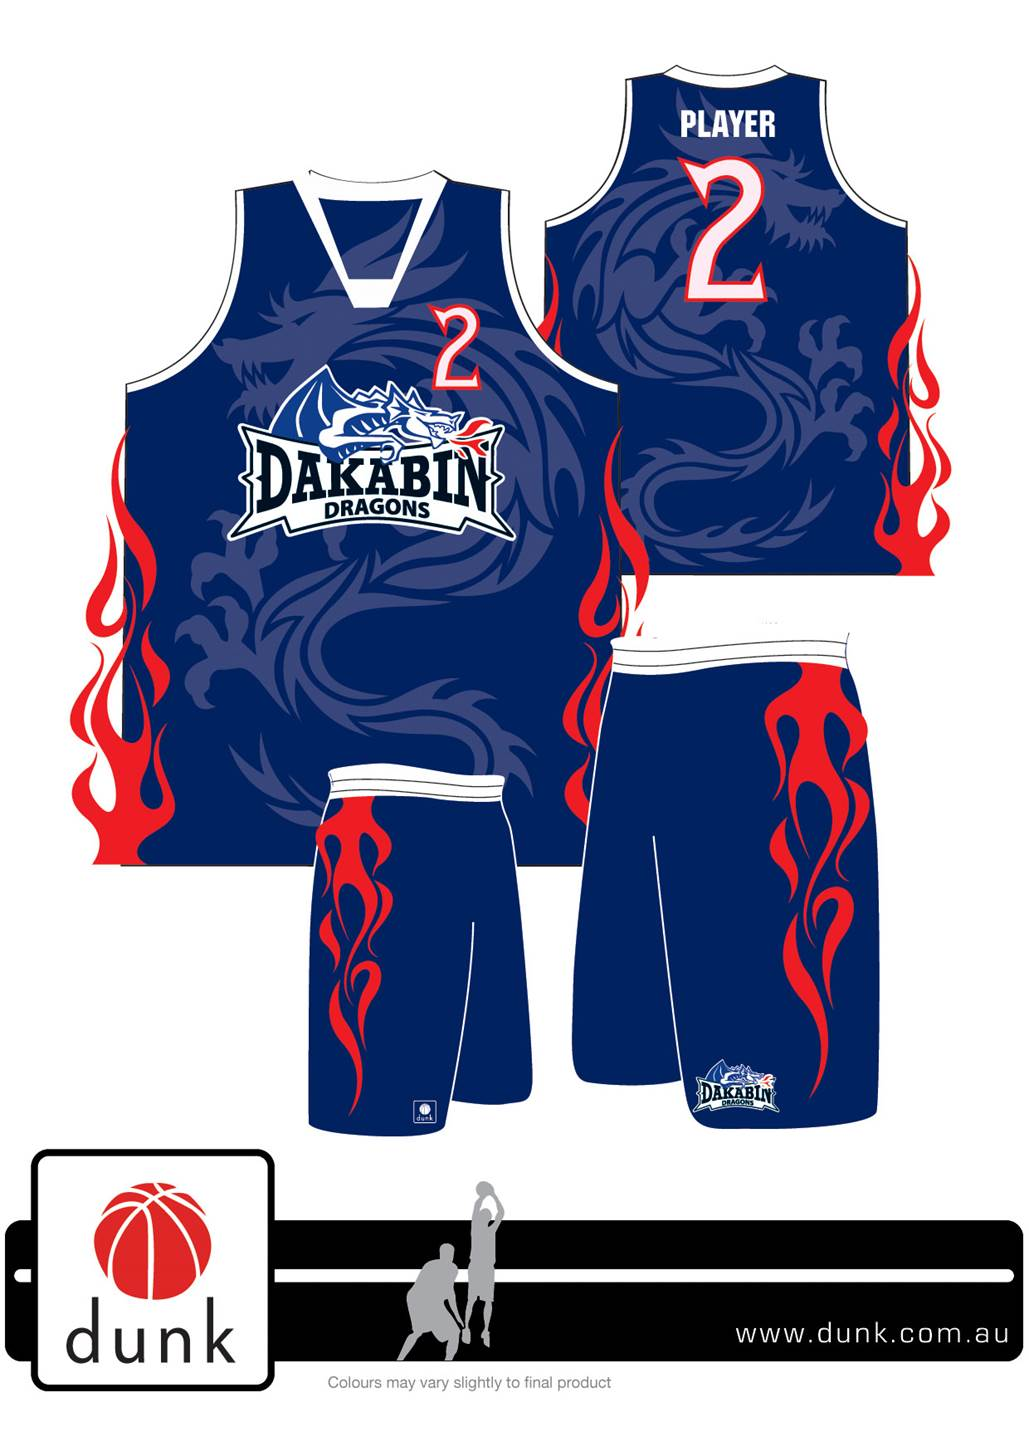 Dakabin Dragons Basketball Club Trials